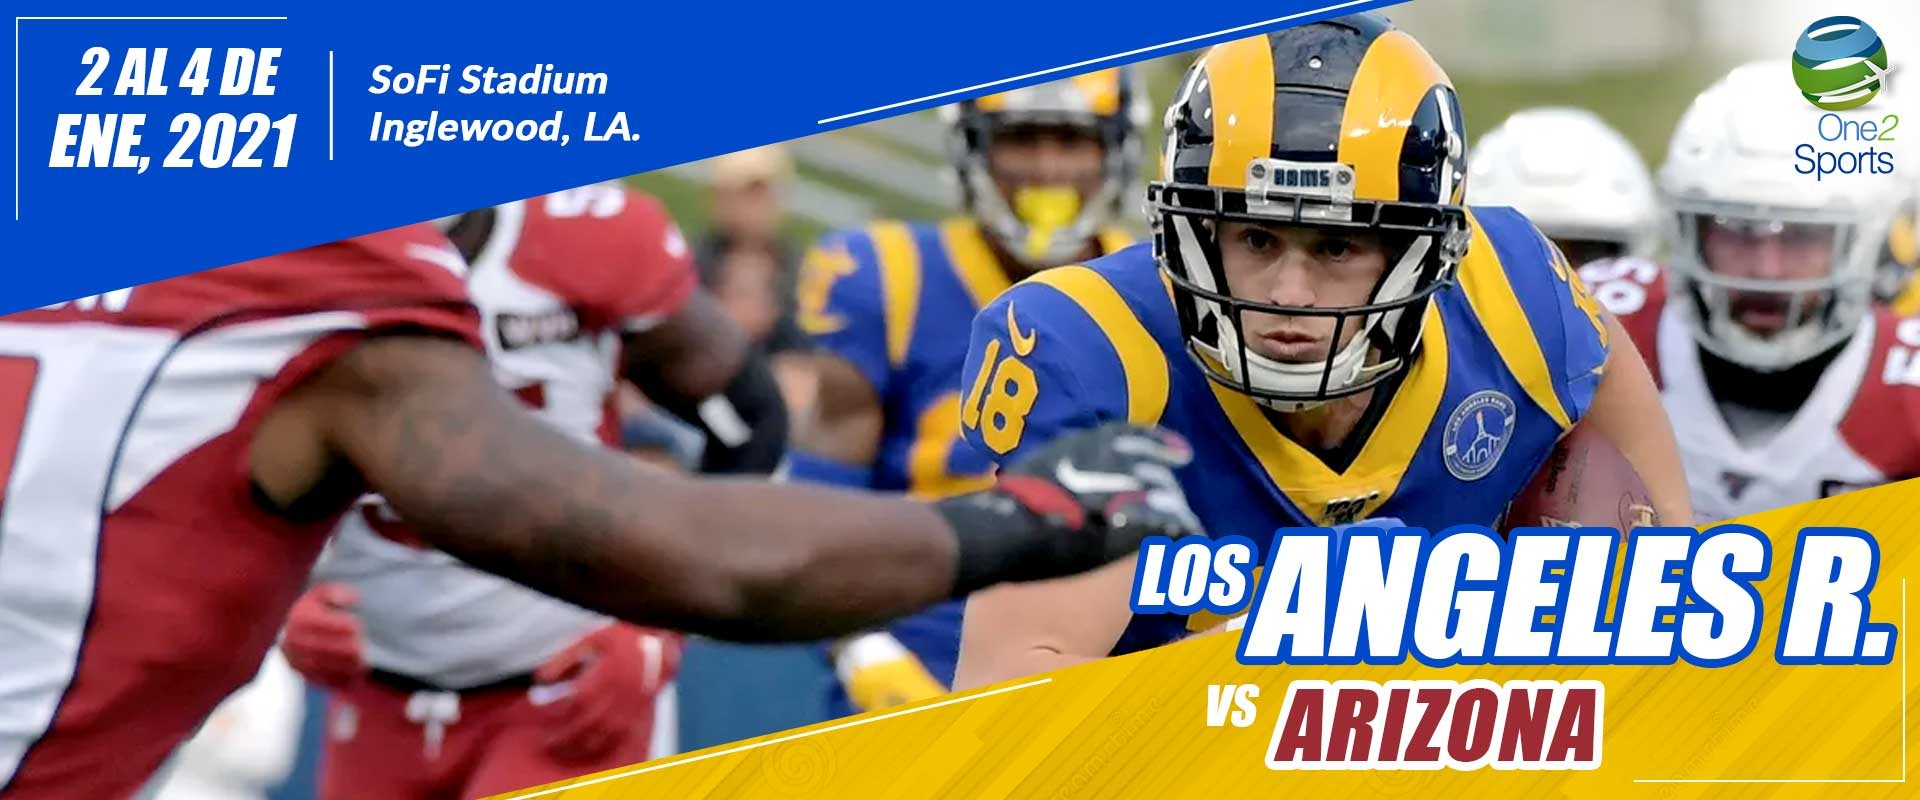 Los Angeles R vs Arizona